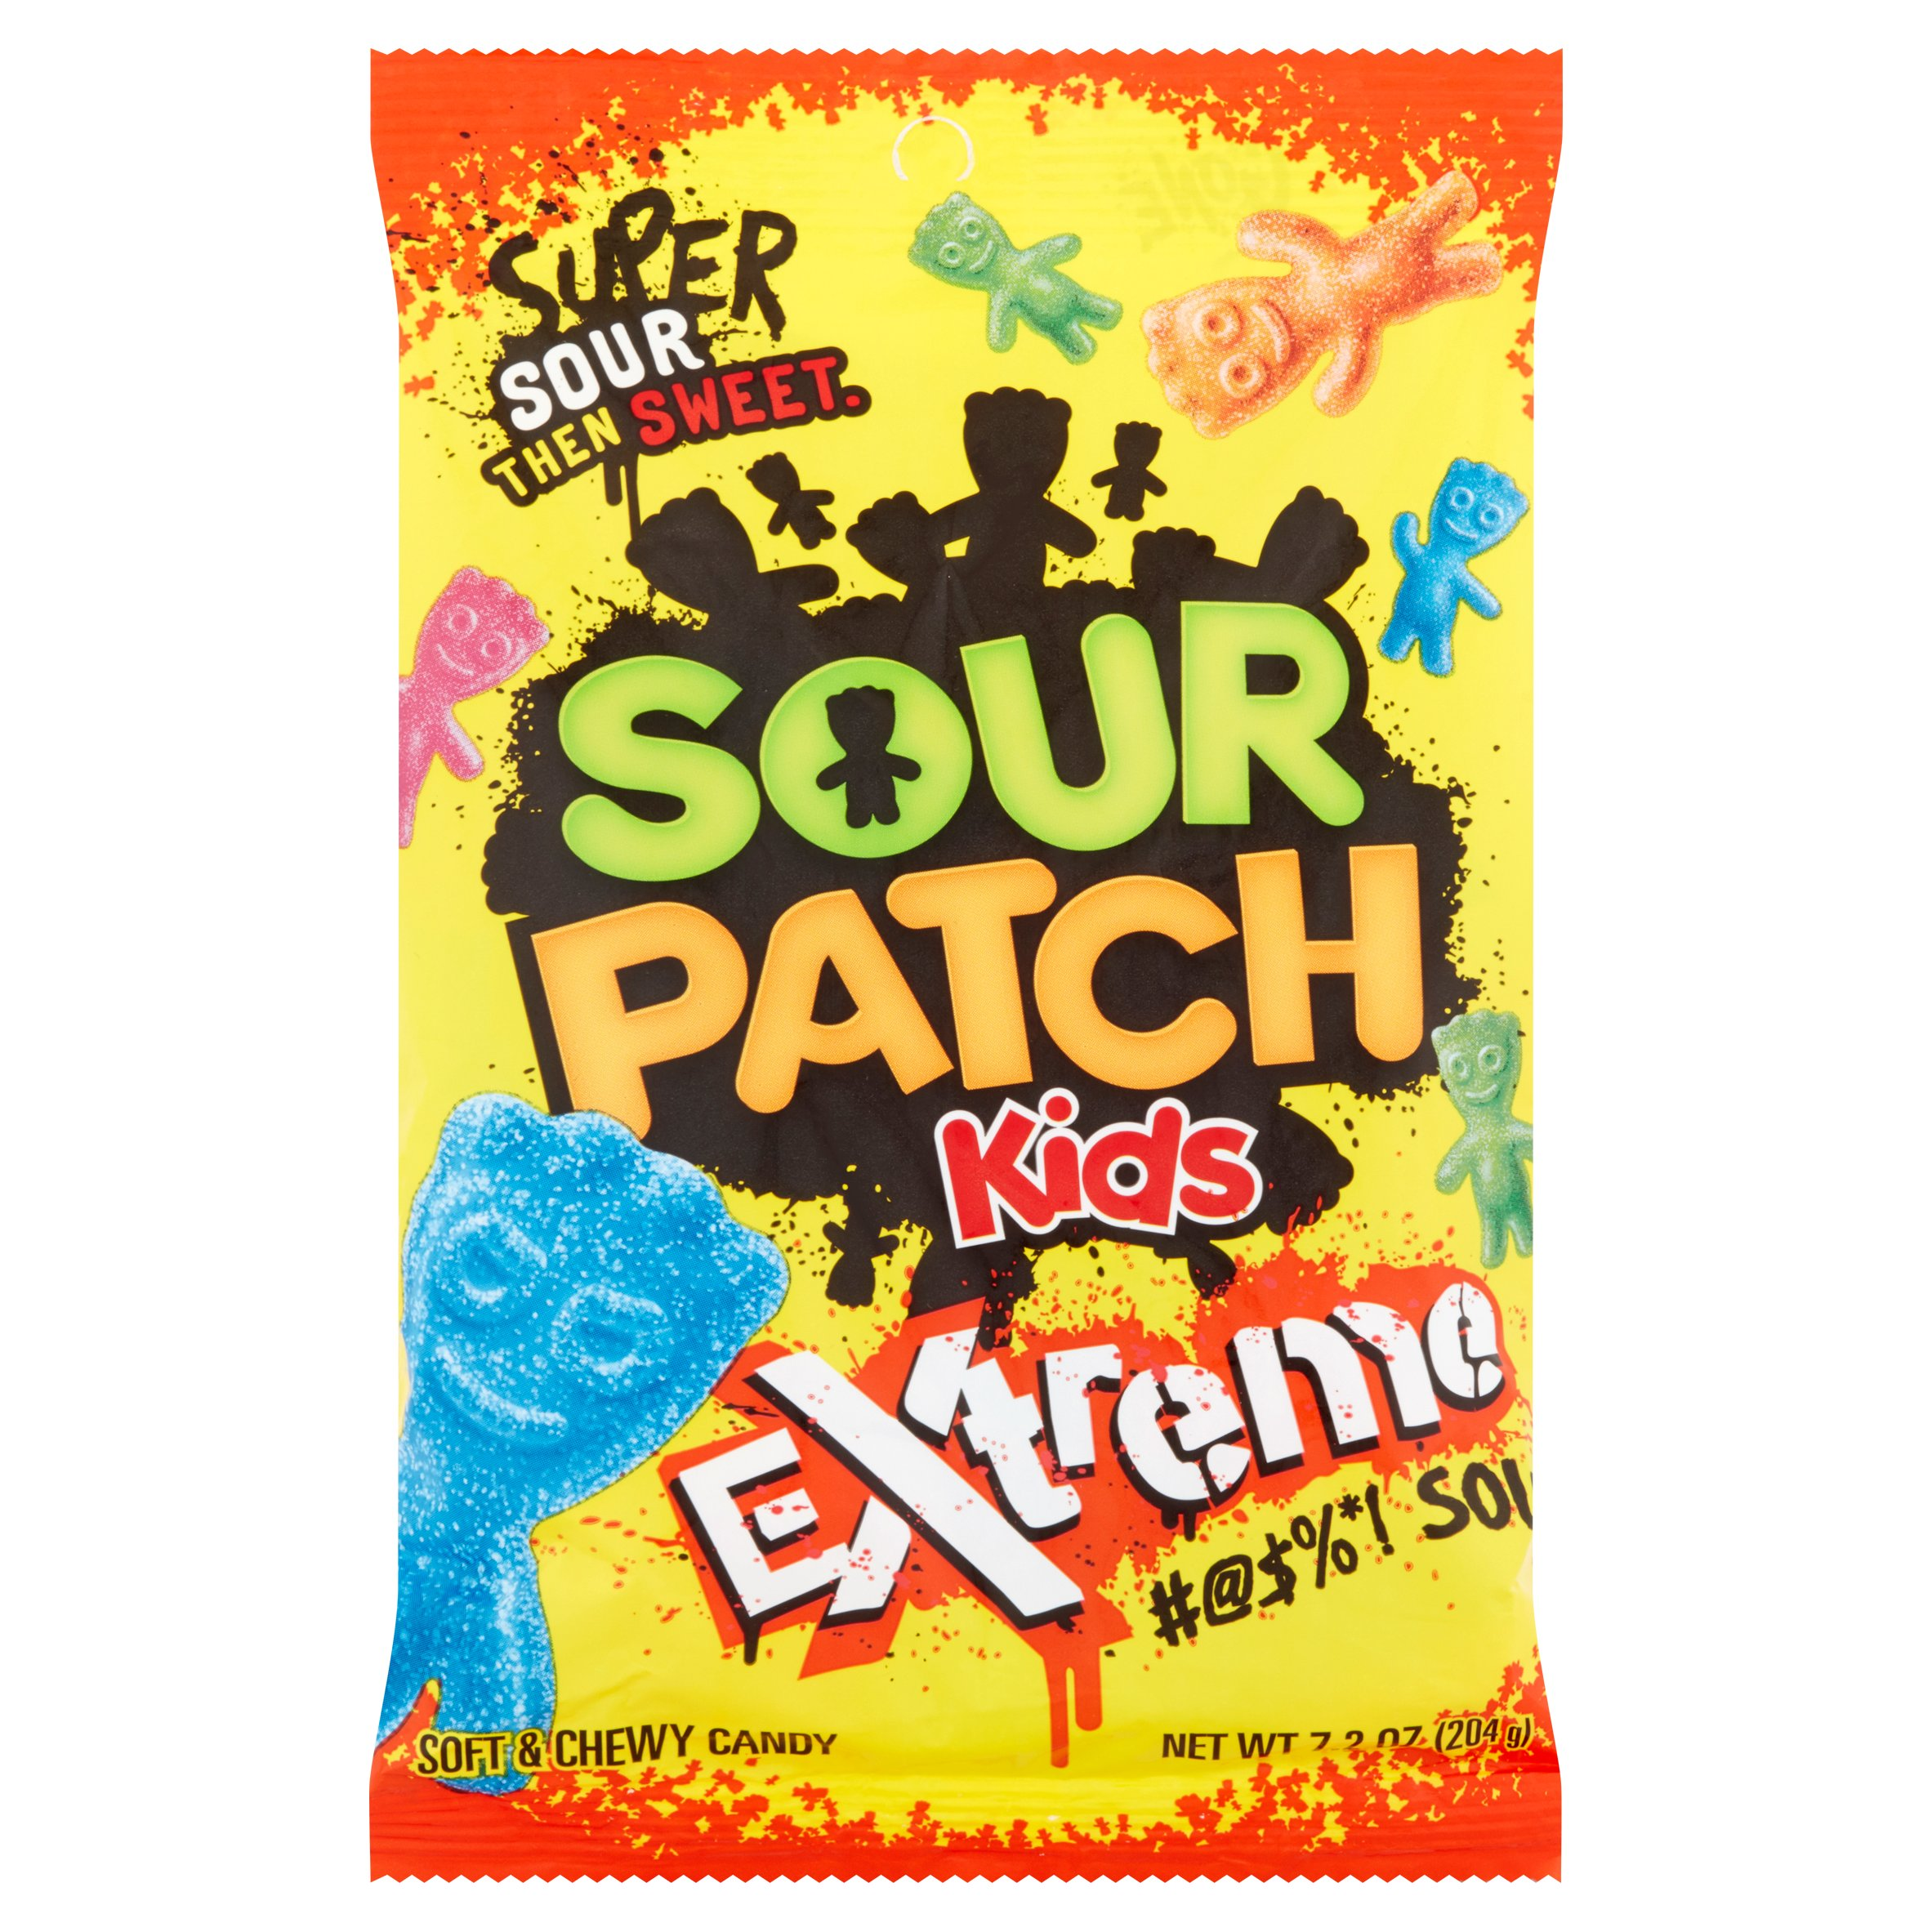 Sour Patch Kids Extreme Soft & Chewy Candies, 7.2 Oz.